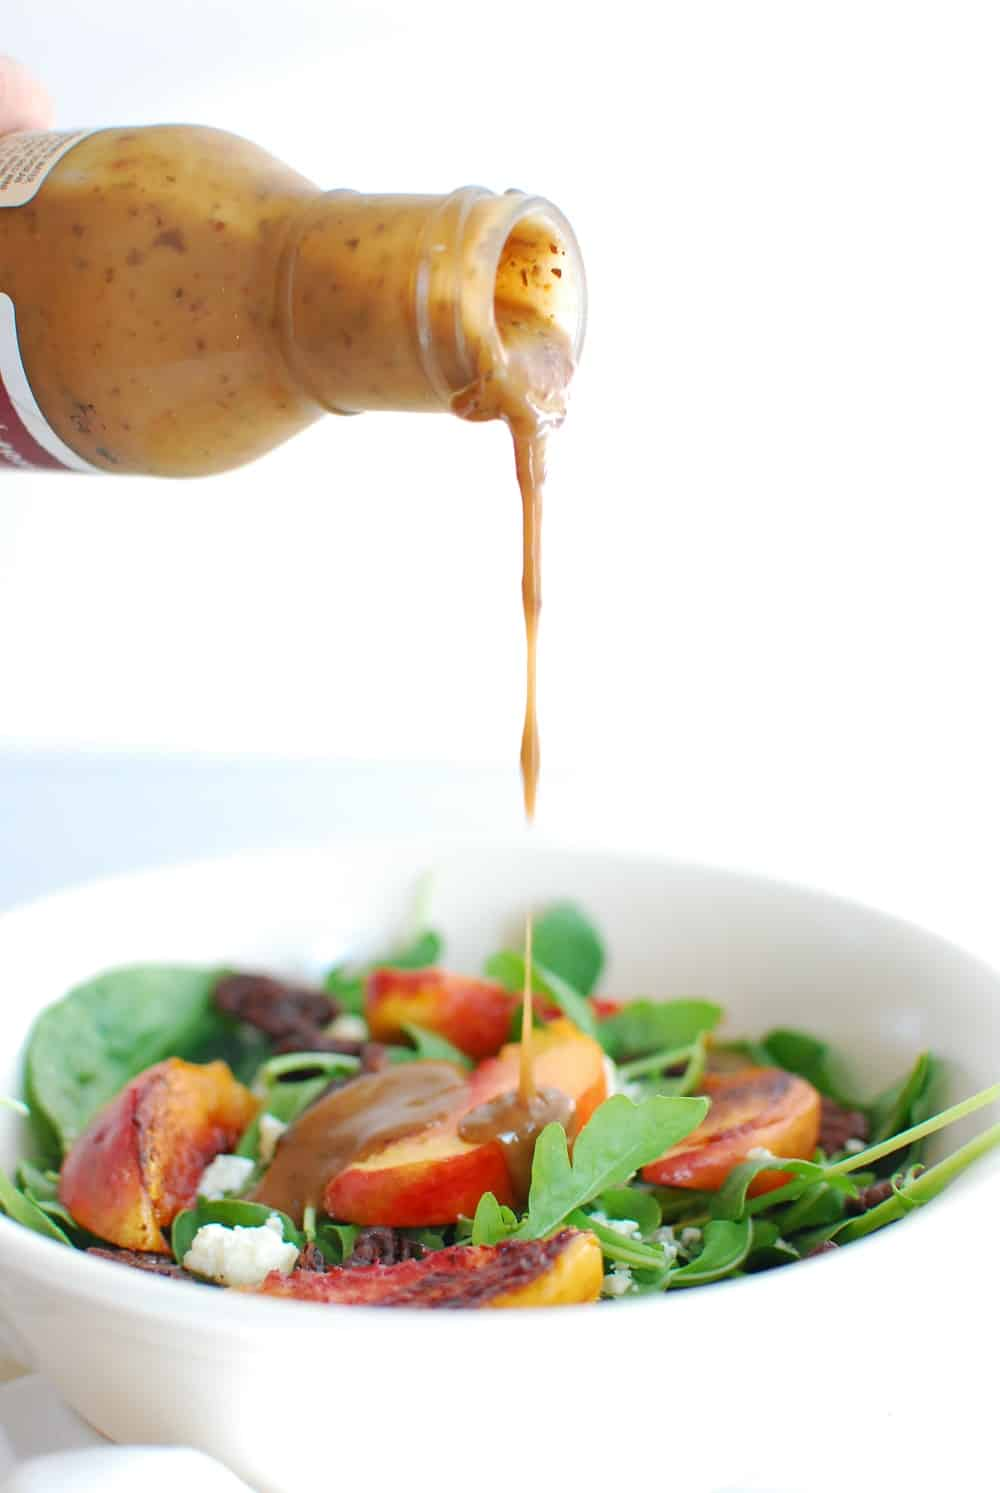 Balsamic dressing being drizzled on top of a spinach arugula salad